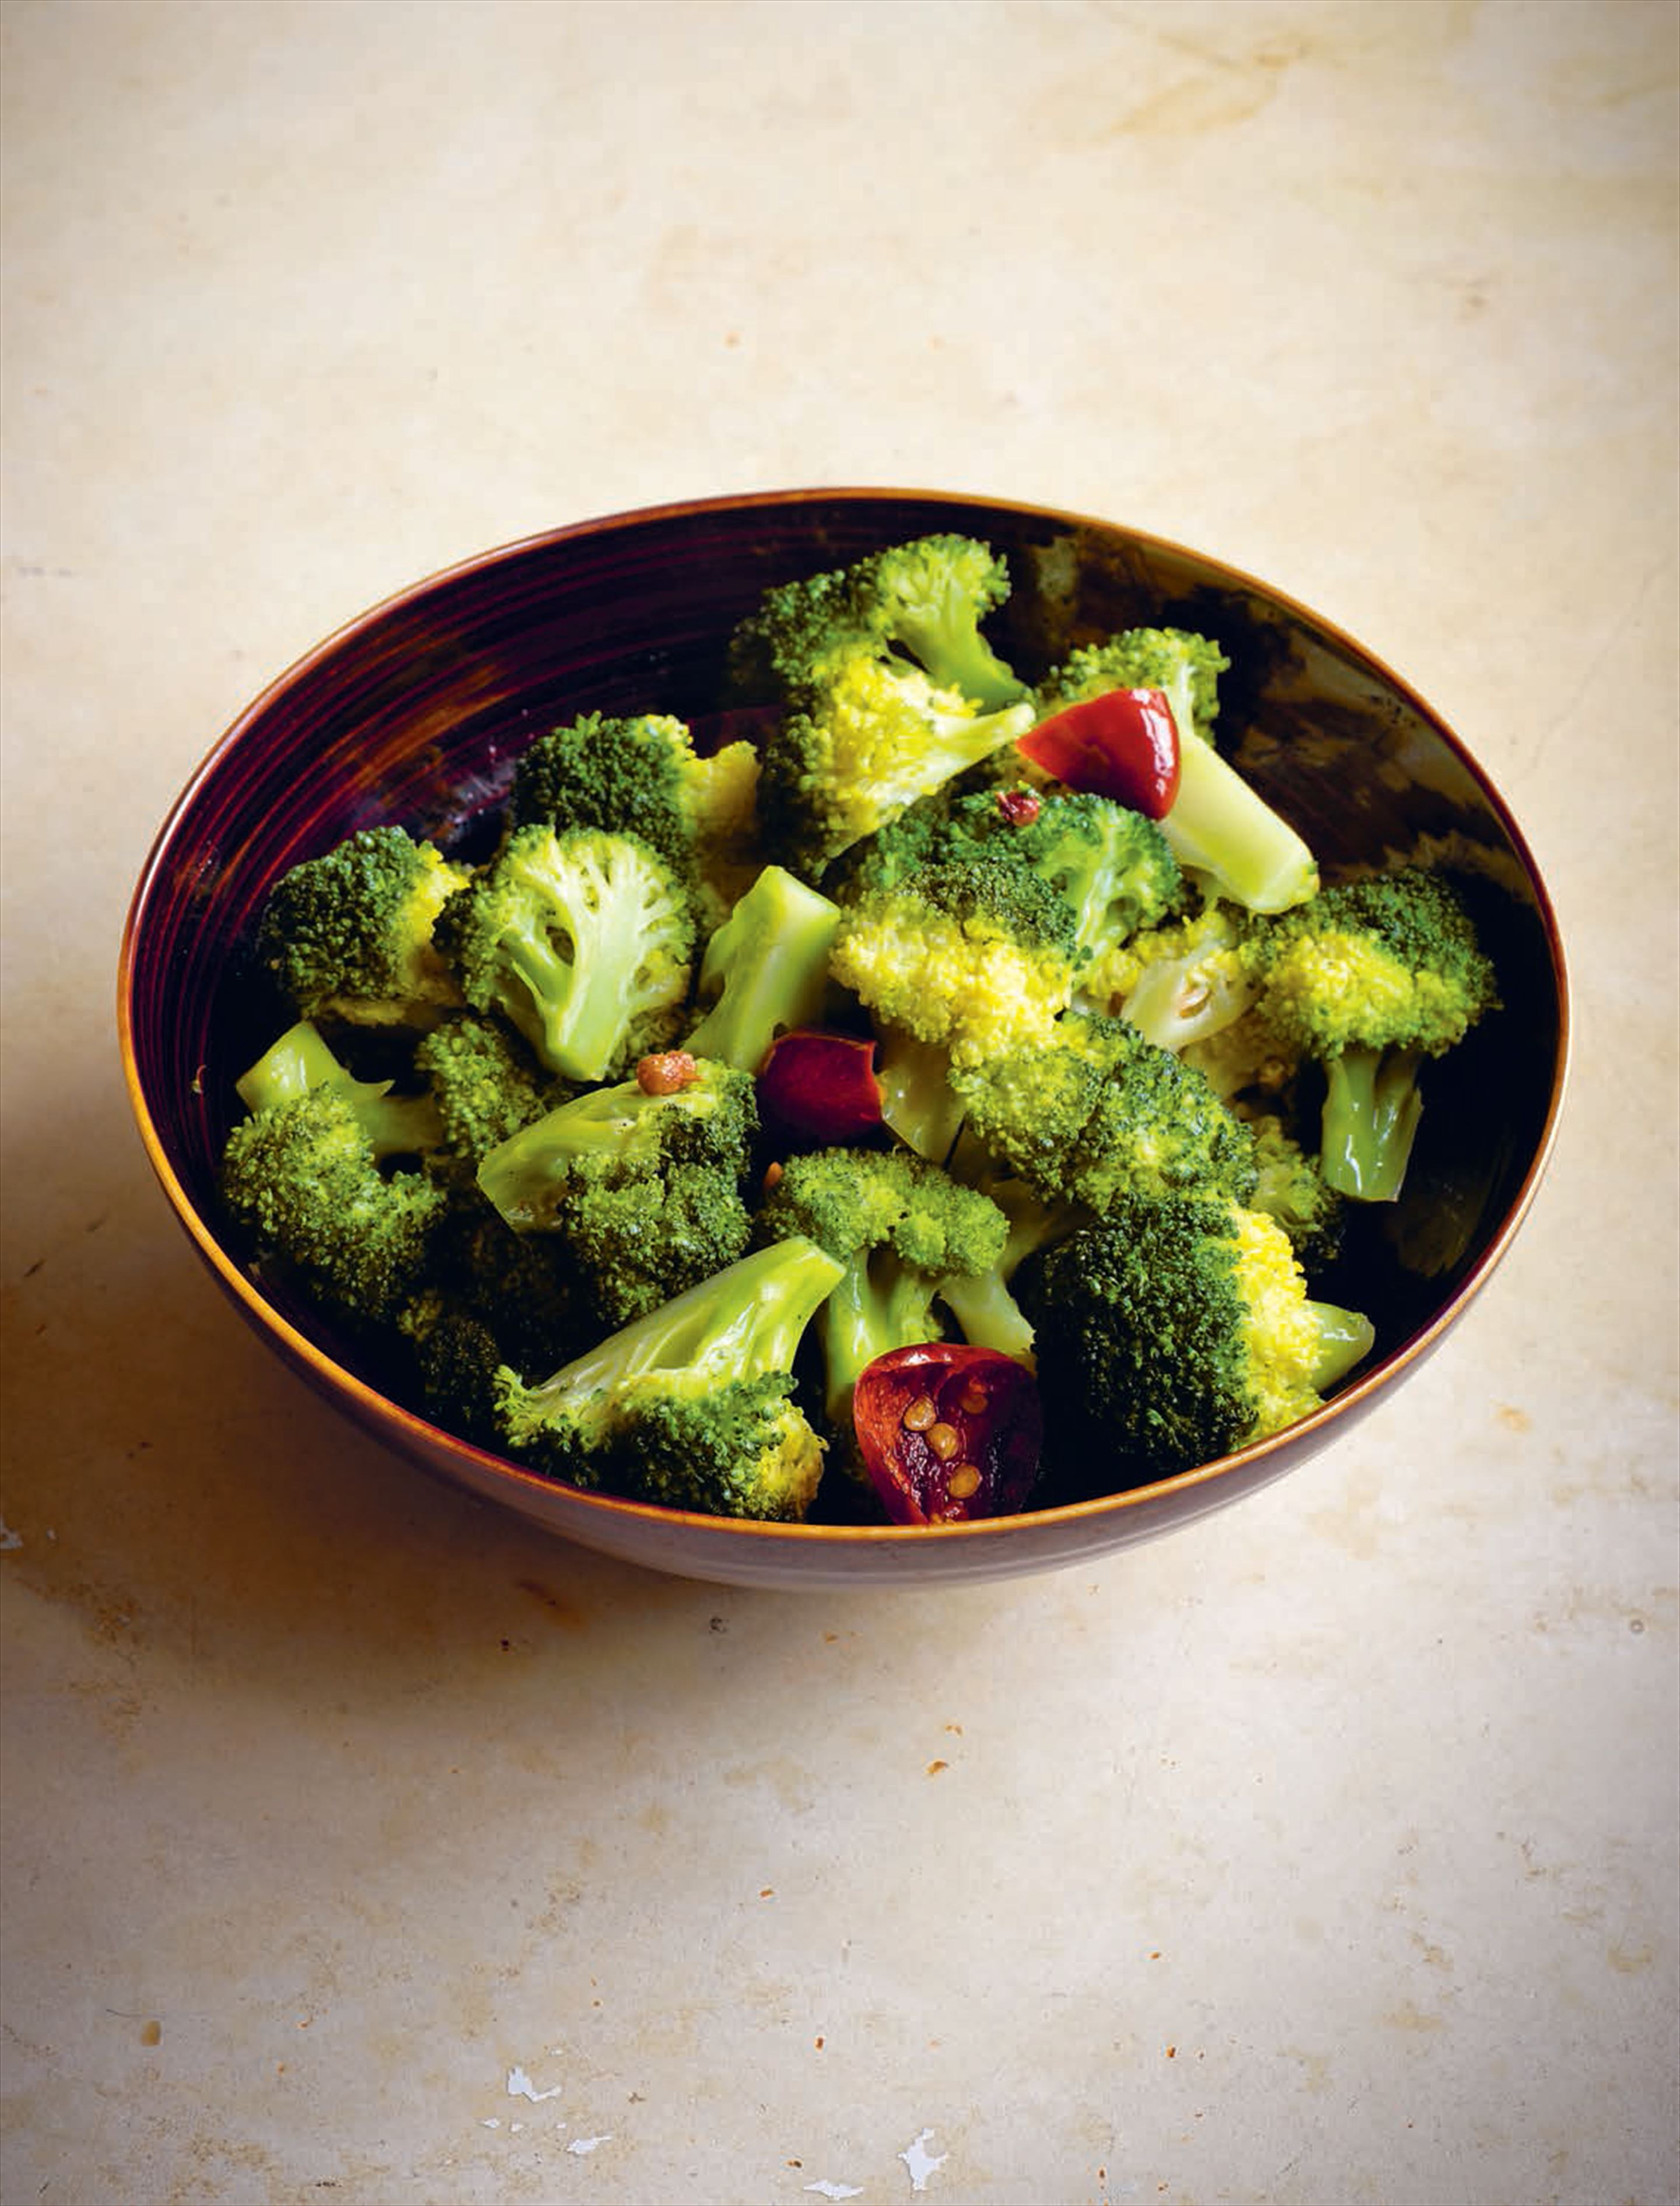 Stir-fried broccoli with chilli and Sichuan pepper